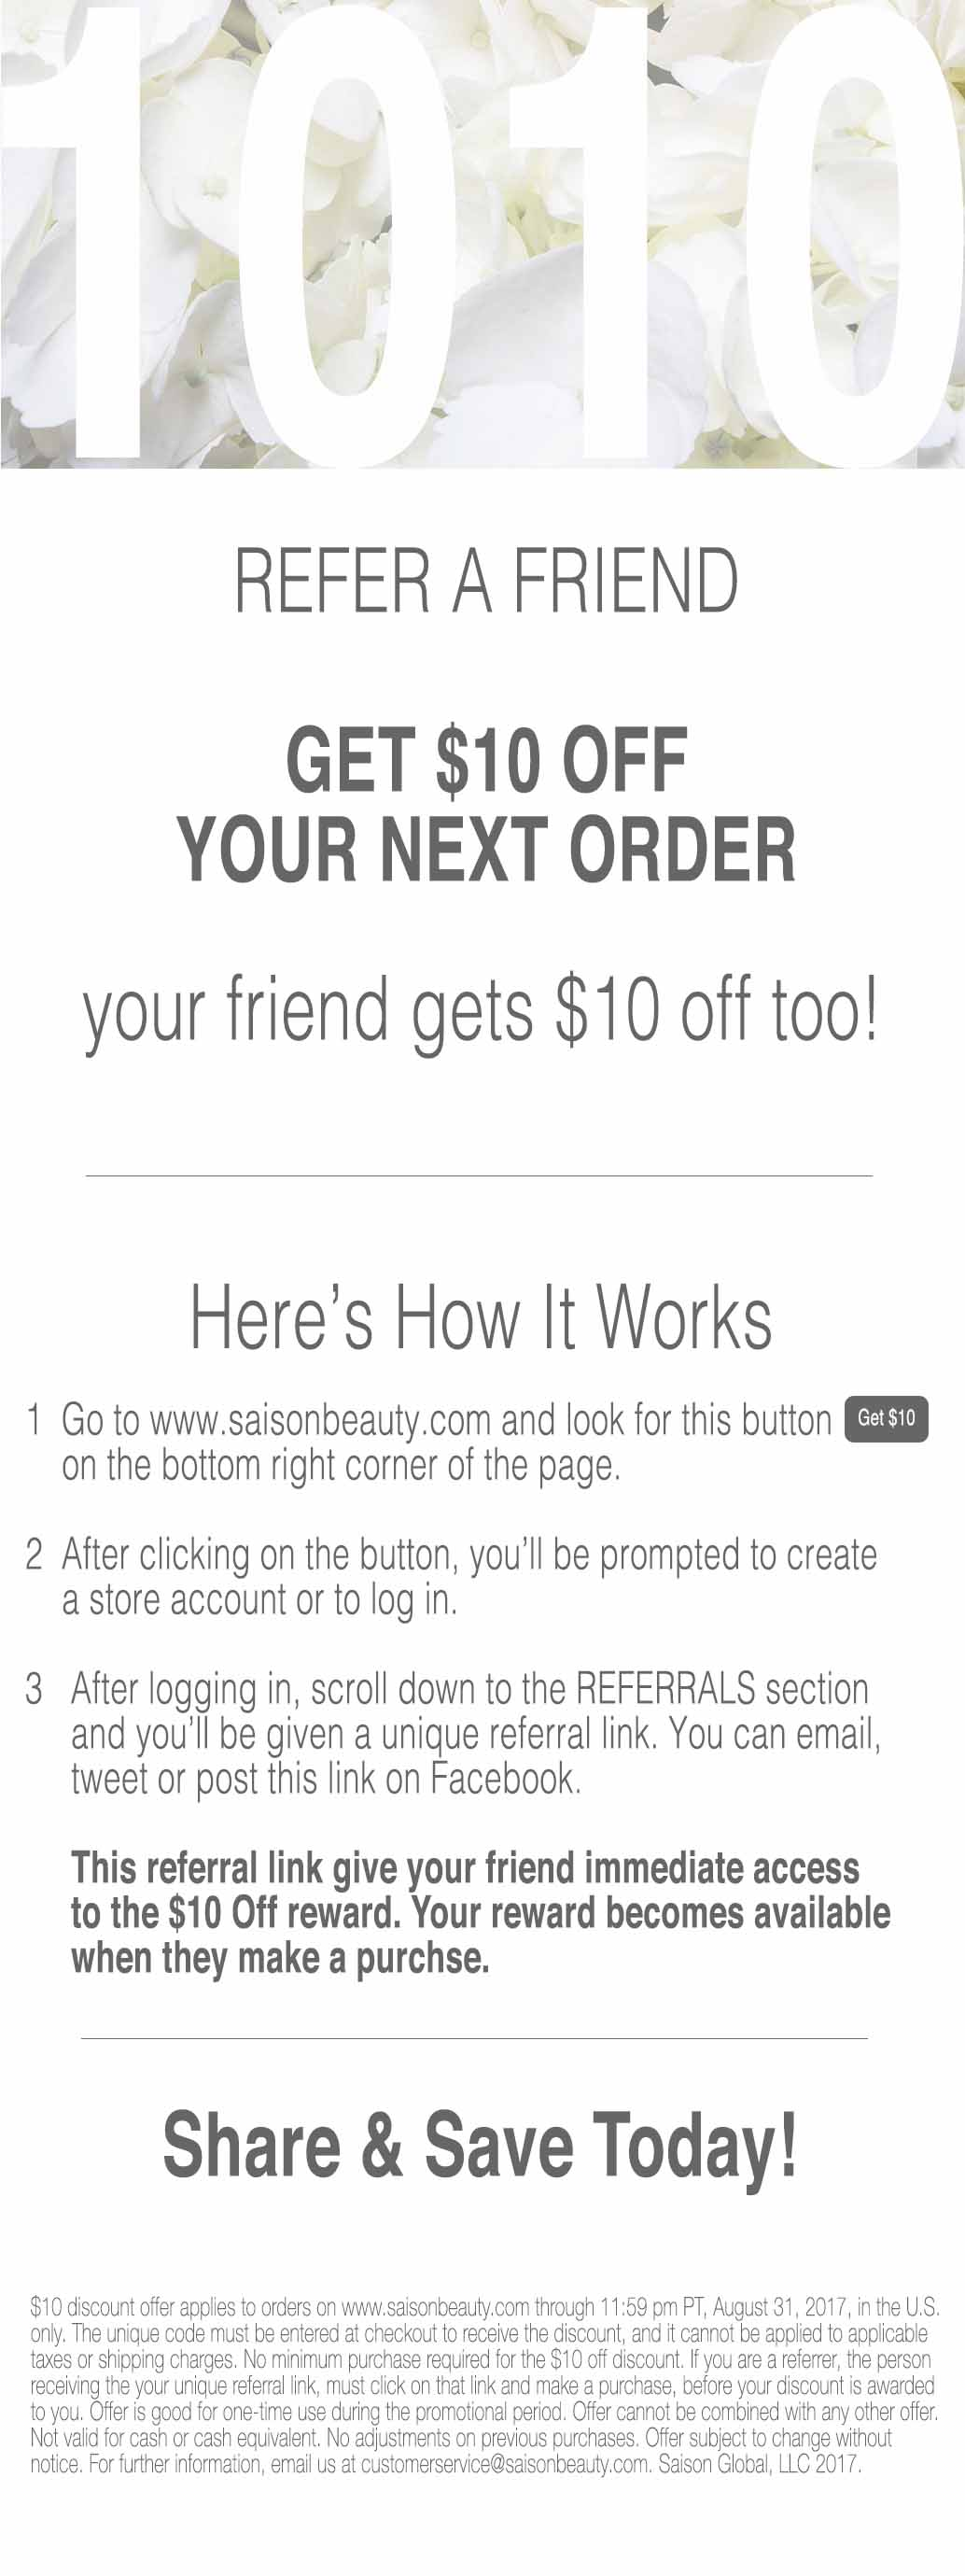 refer-a-friend-landing-page-2.jpg